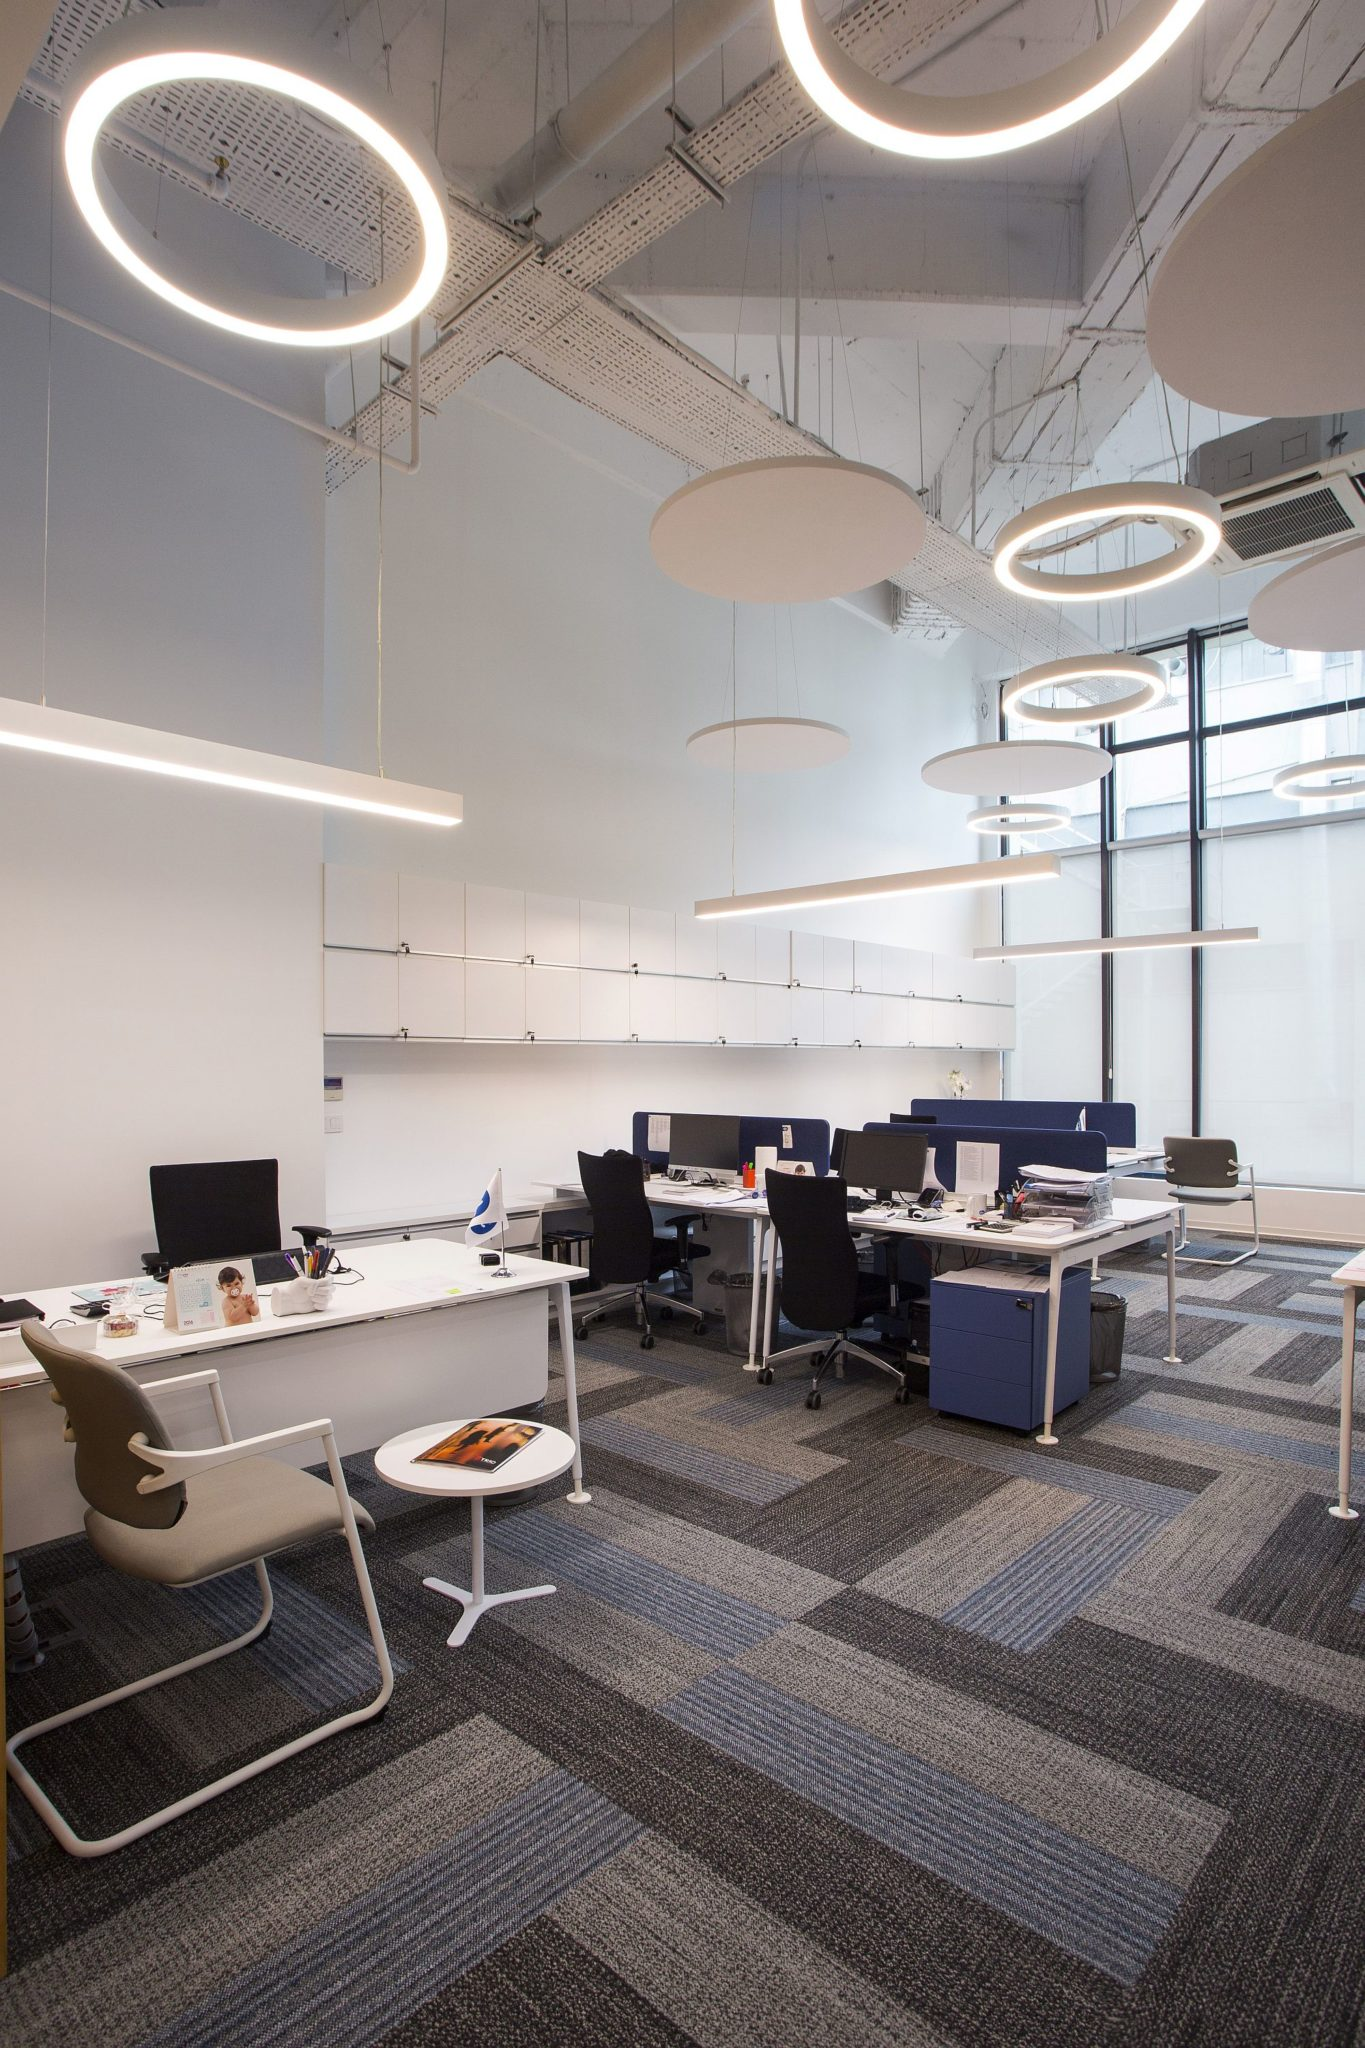 Burda bebek s office in istanbul polished with a playful - Interior smart lighting ...